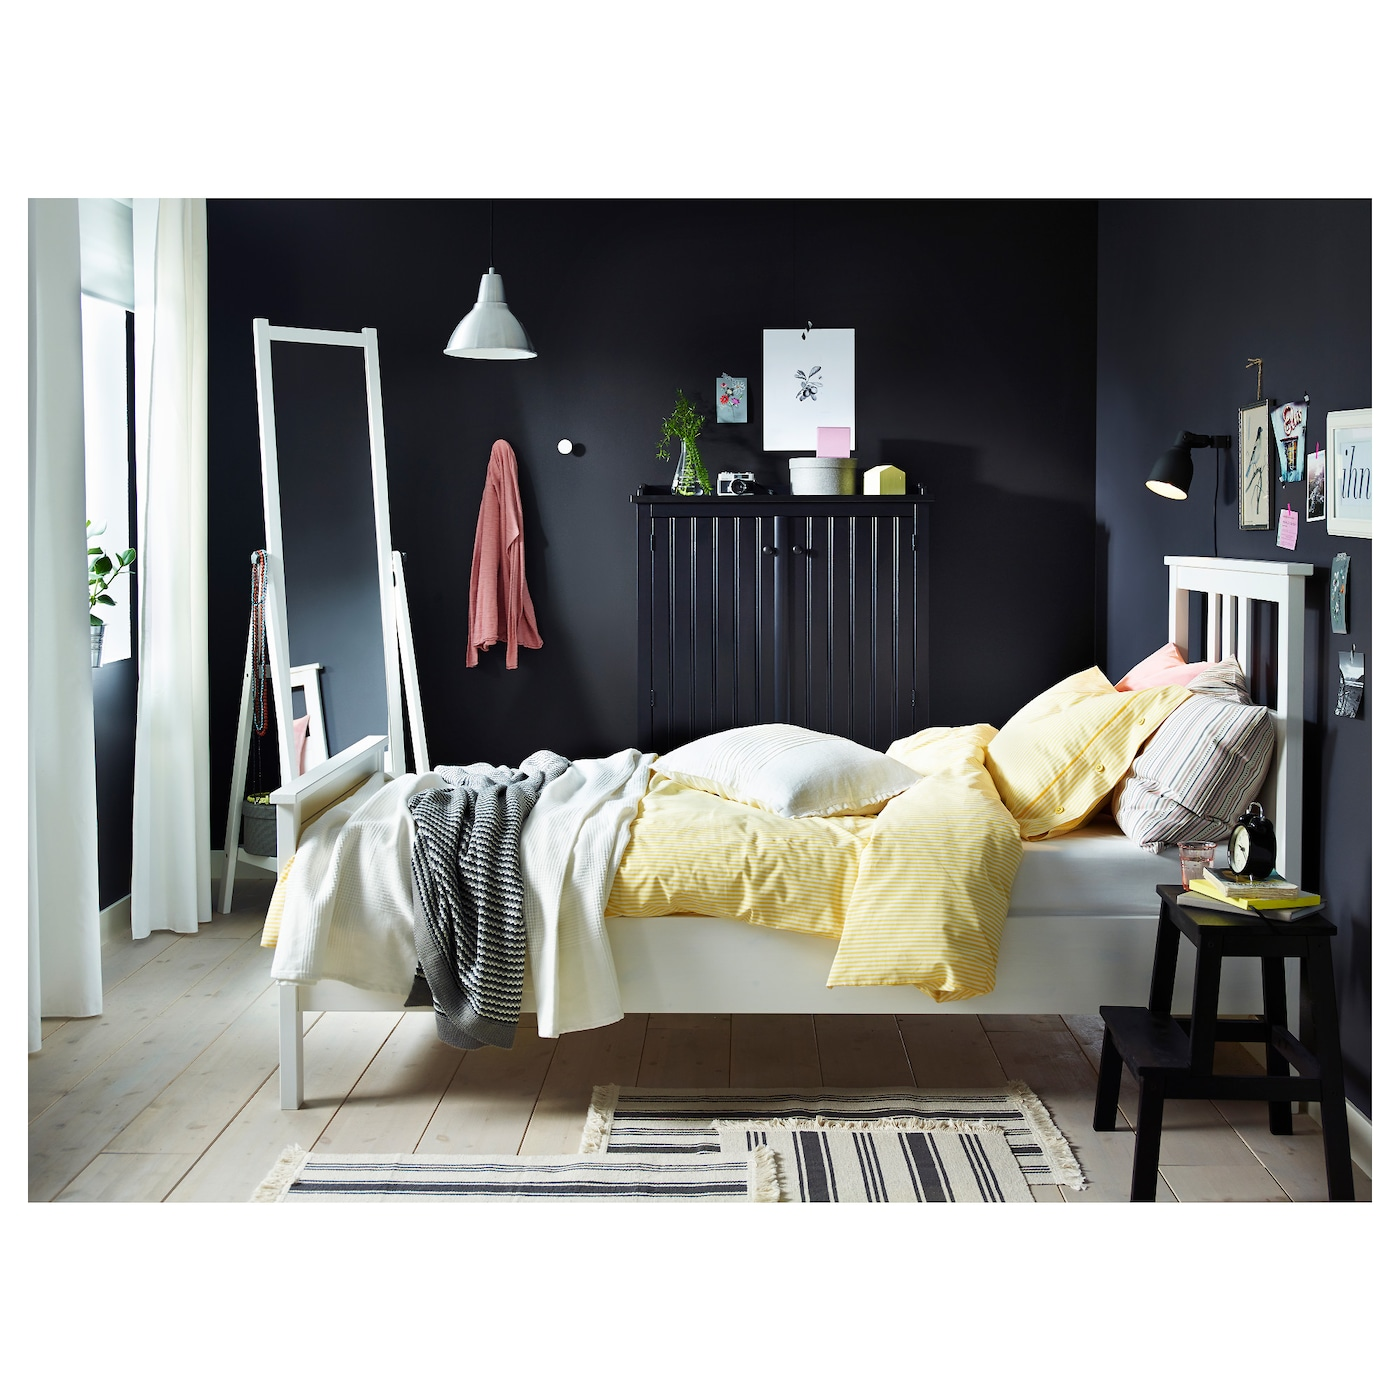 IKEA ISFJORDEN standing mirror Made of solid wood, which is a hardwearing and warm natural material.